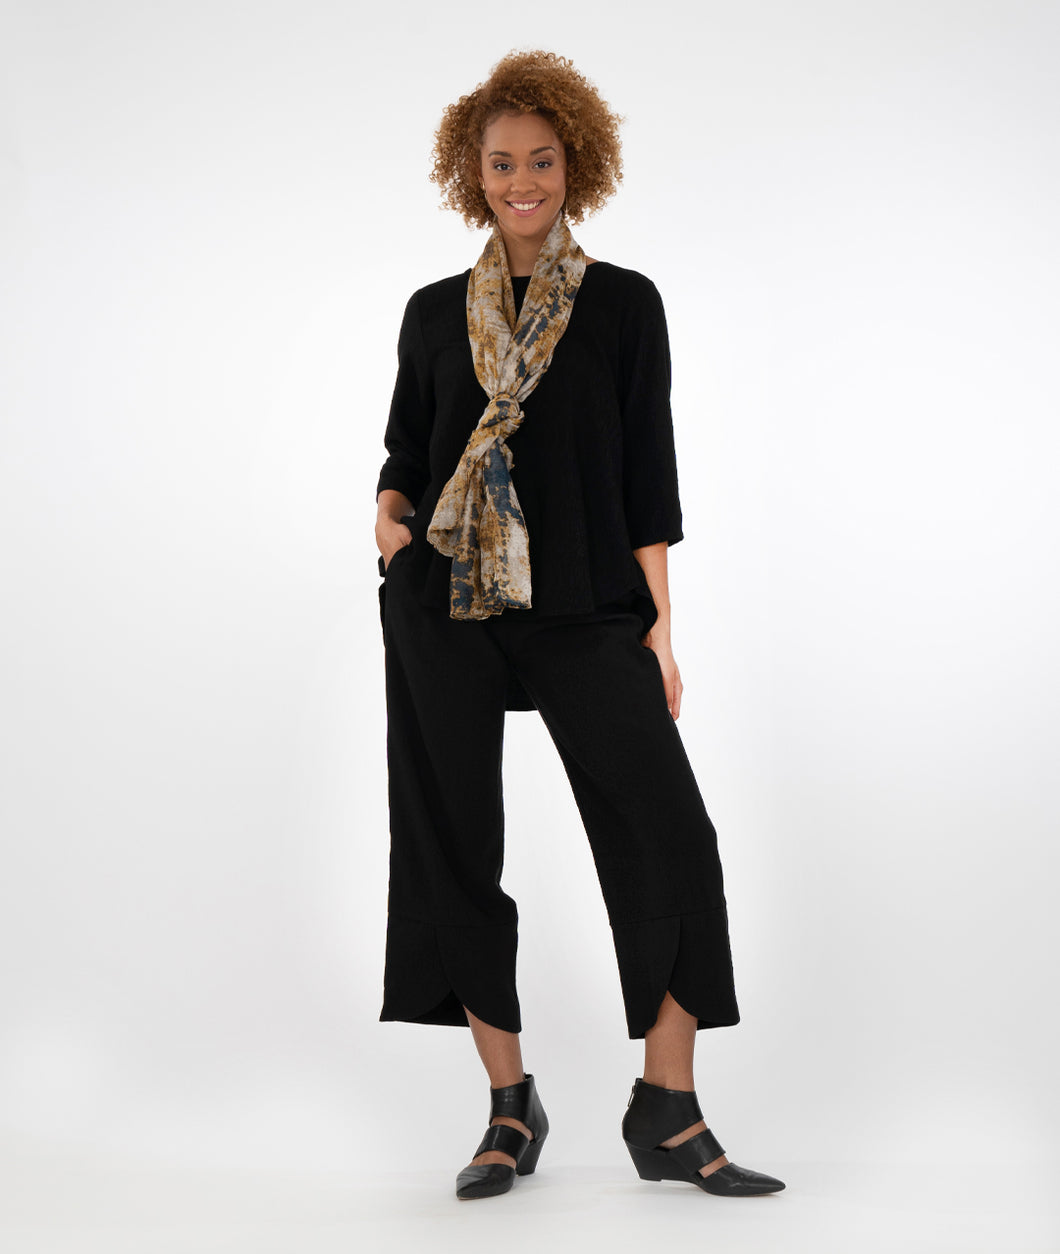 model in a black top with a multicolored scarf, worn with black pants with a curved overlay at the hem, standing infront of a white background